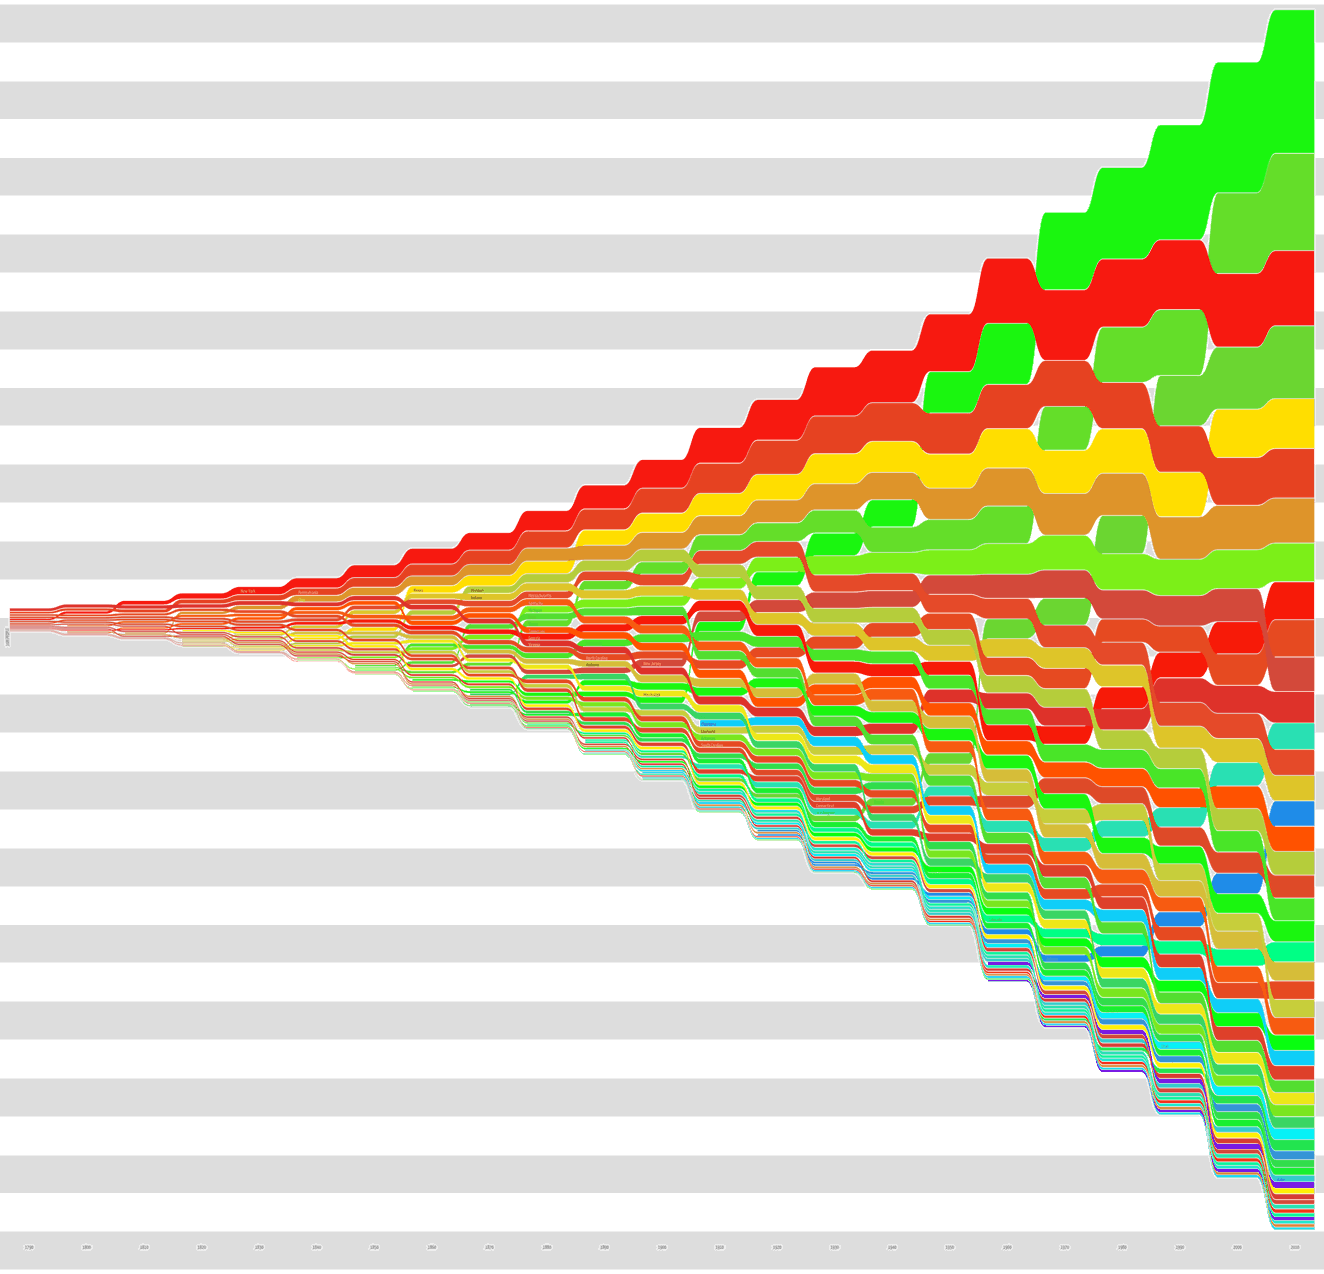 Wormtrails graph of the population of all 50 US states over time